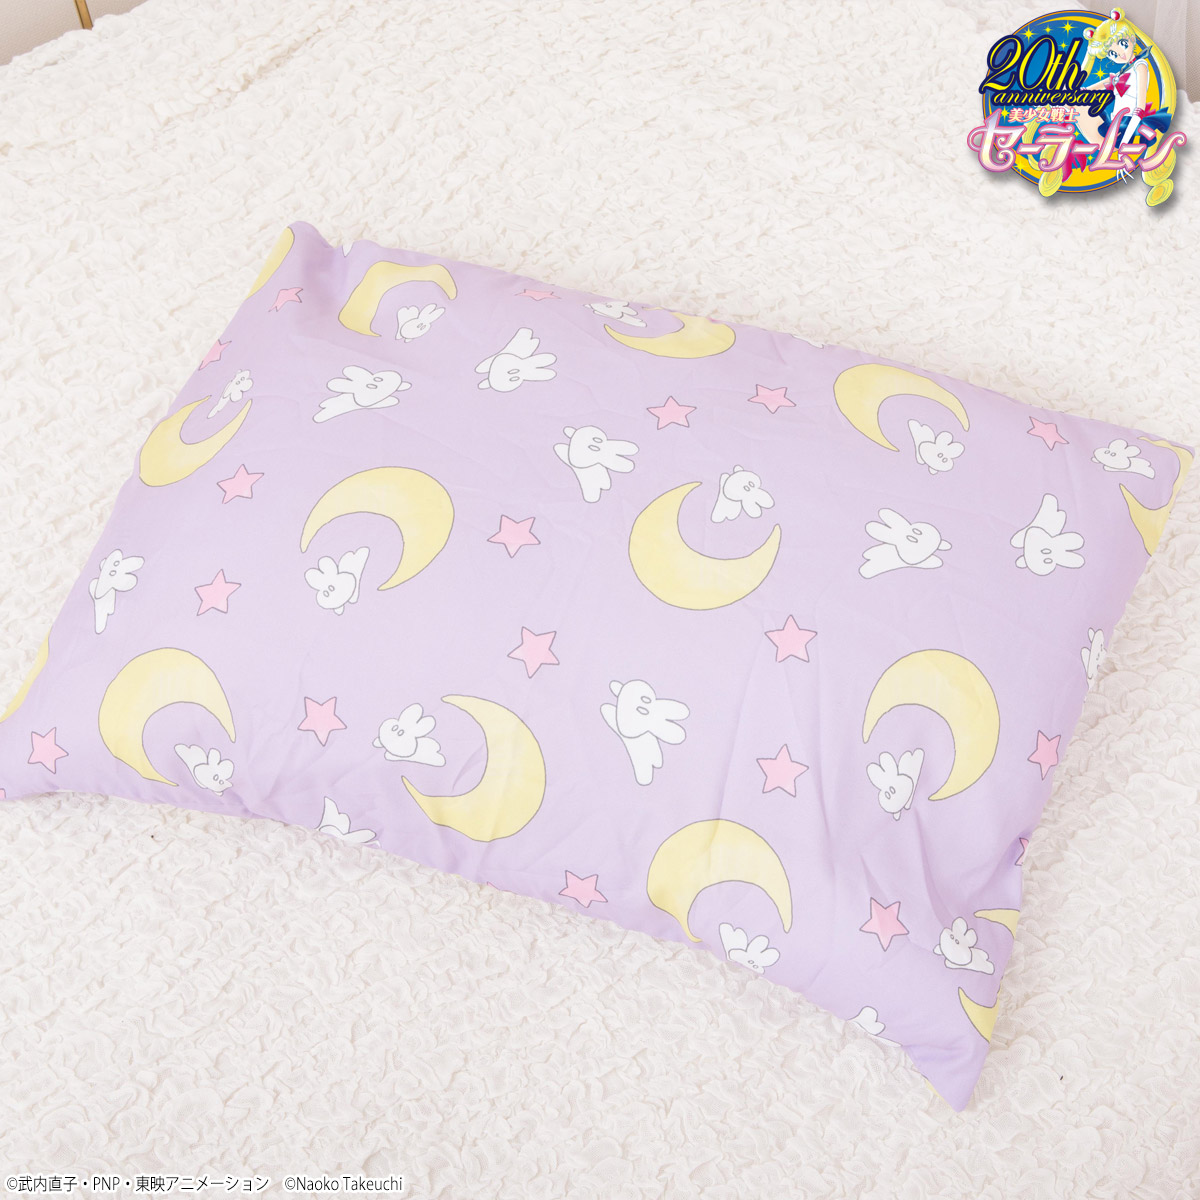 Sailor Moon Merchandise Toys Usagi Blanket